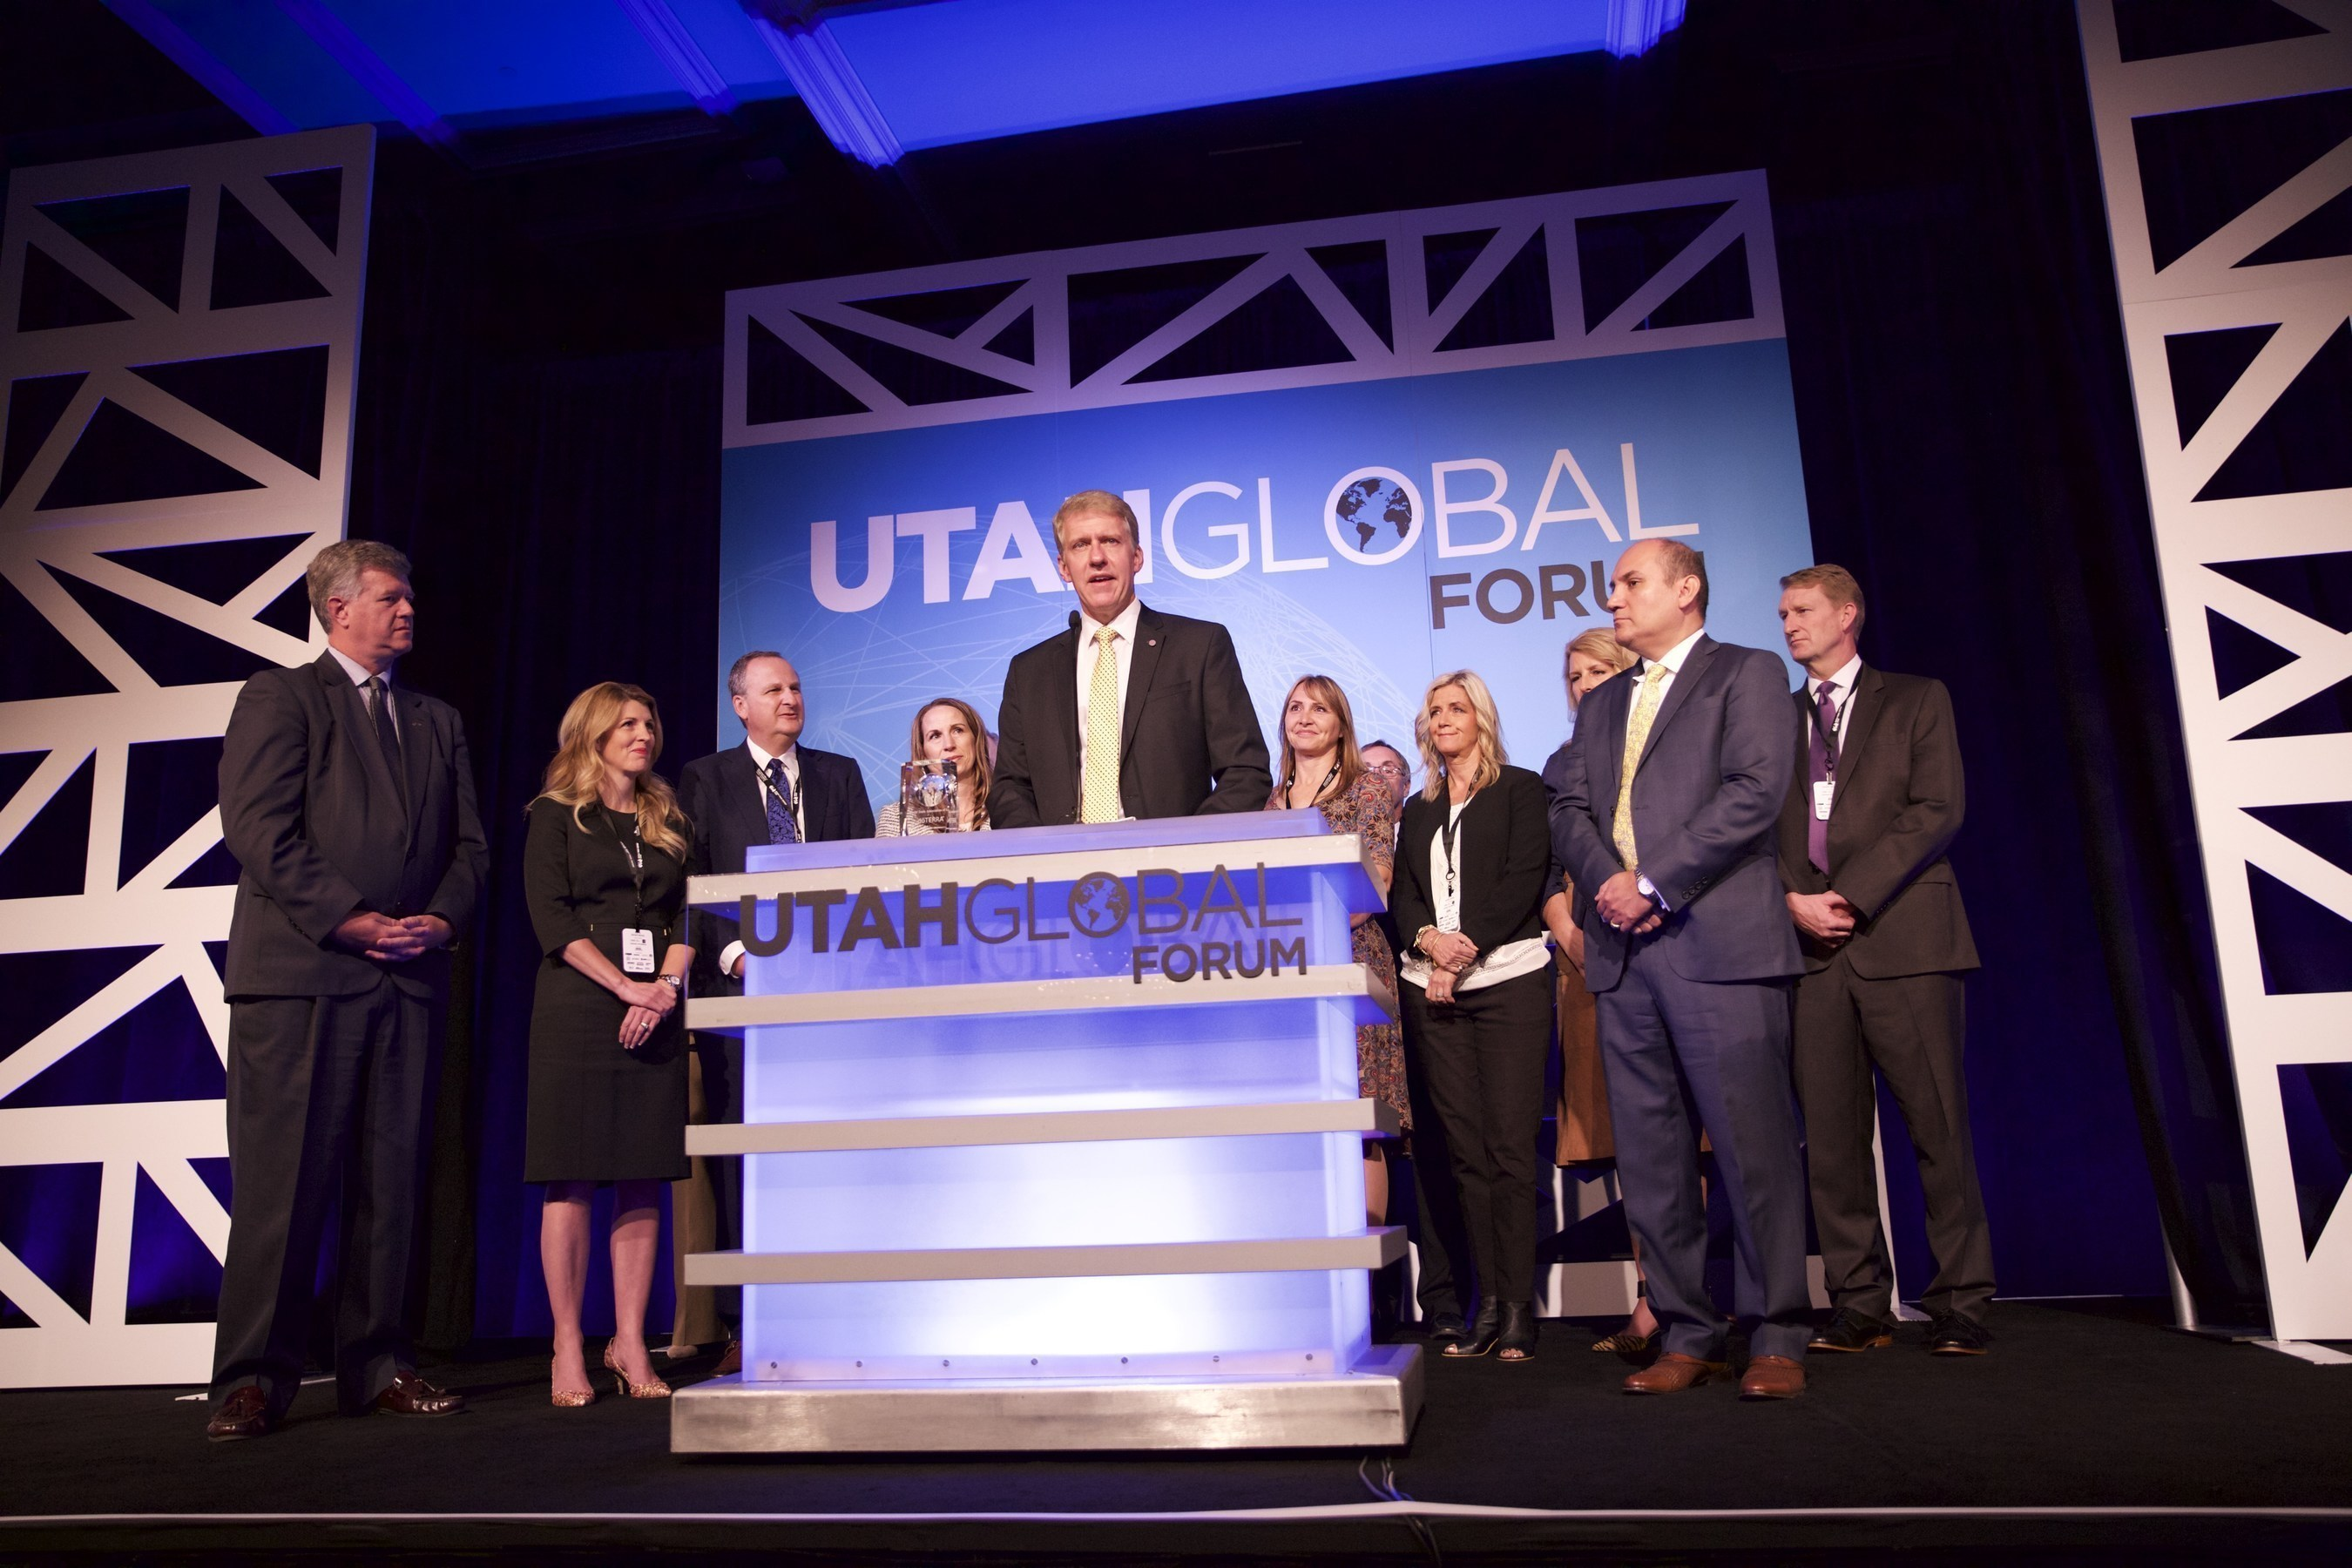 David Stirling, founding executive, CEO & president accepts the 2016 International Company of the Year award.